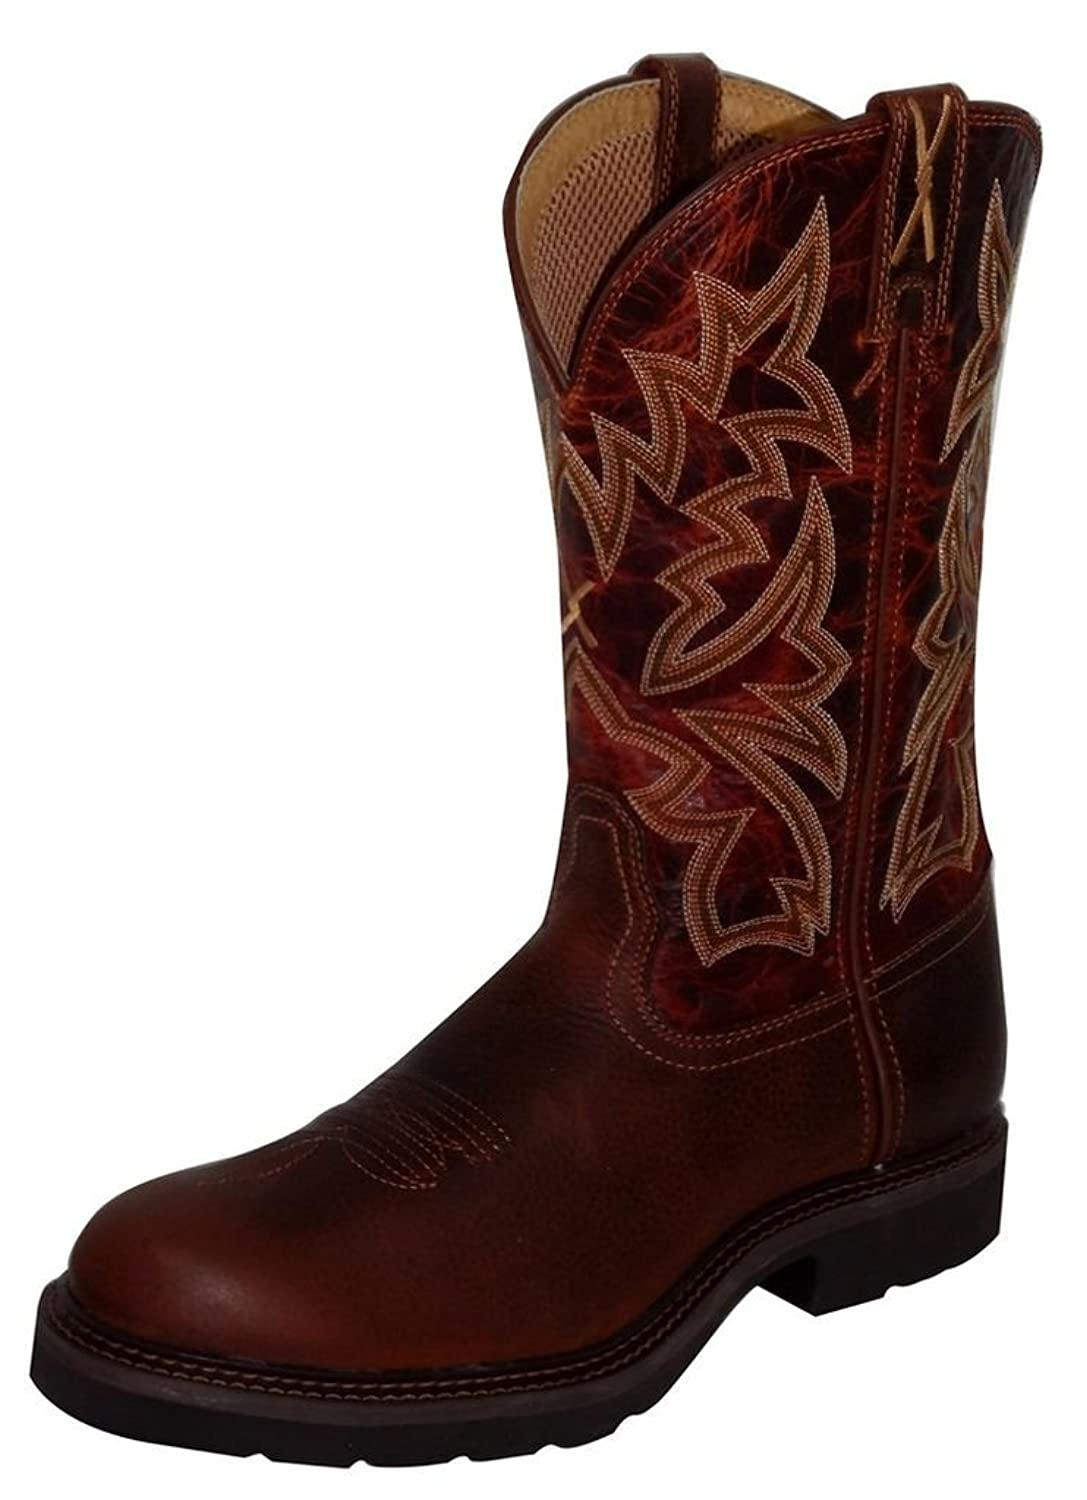 Twisted X Men's Western Pull-On Work Boot Round Toe - Mcw0008